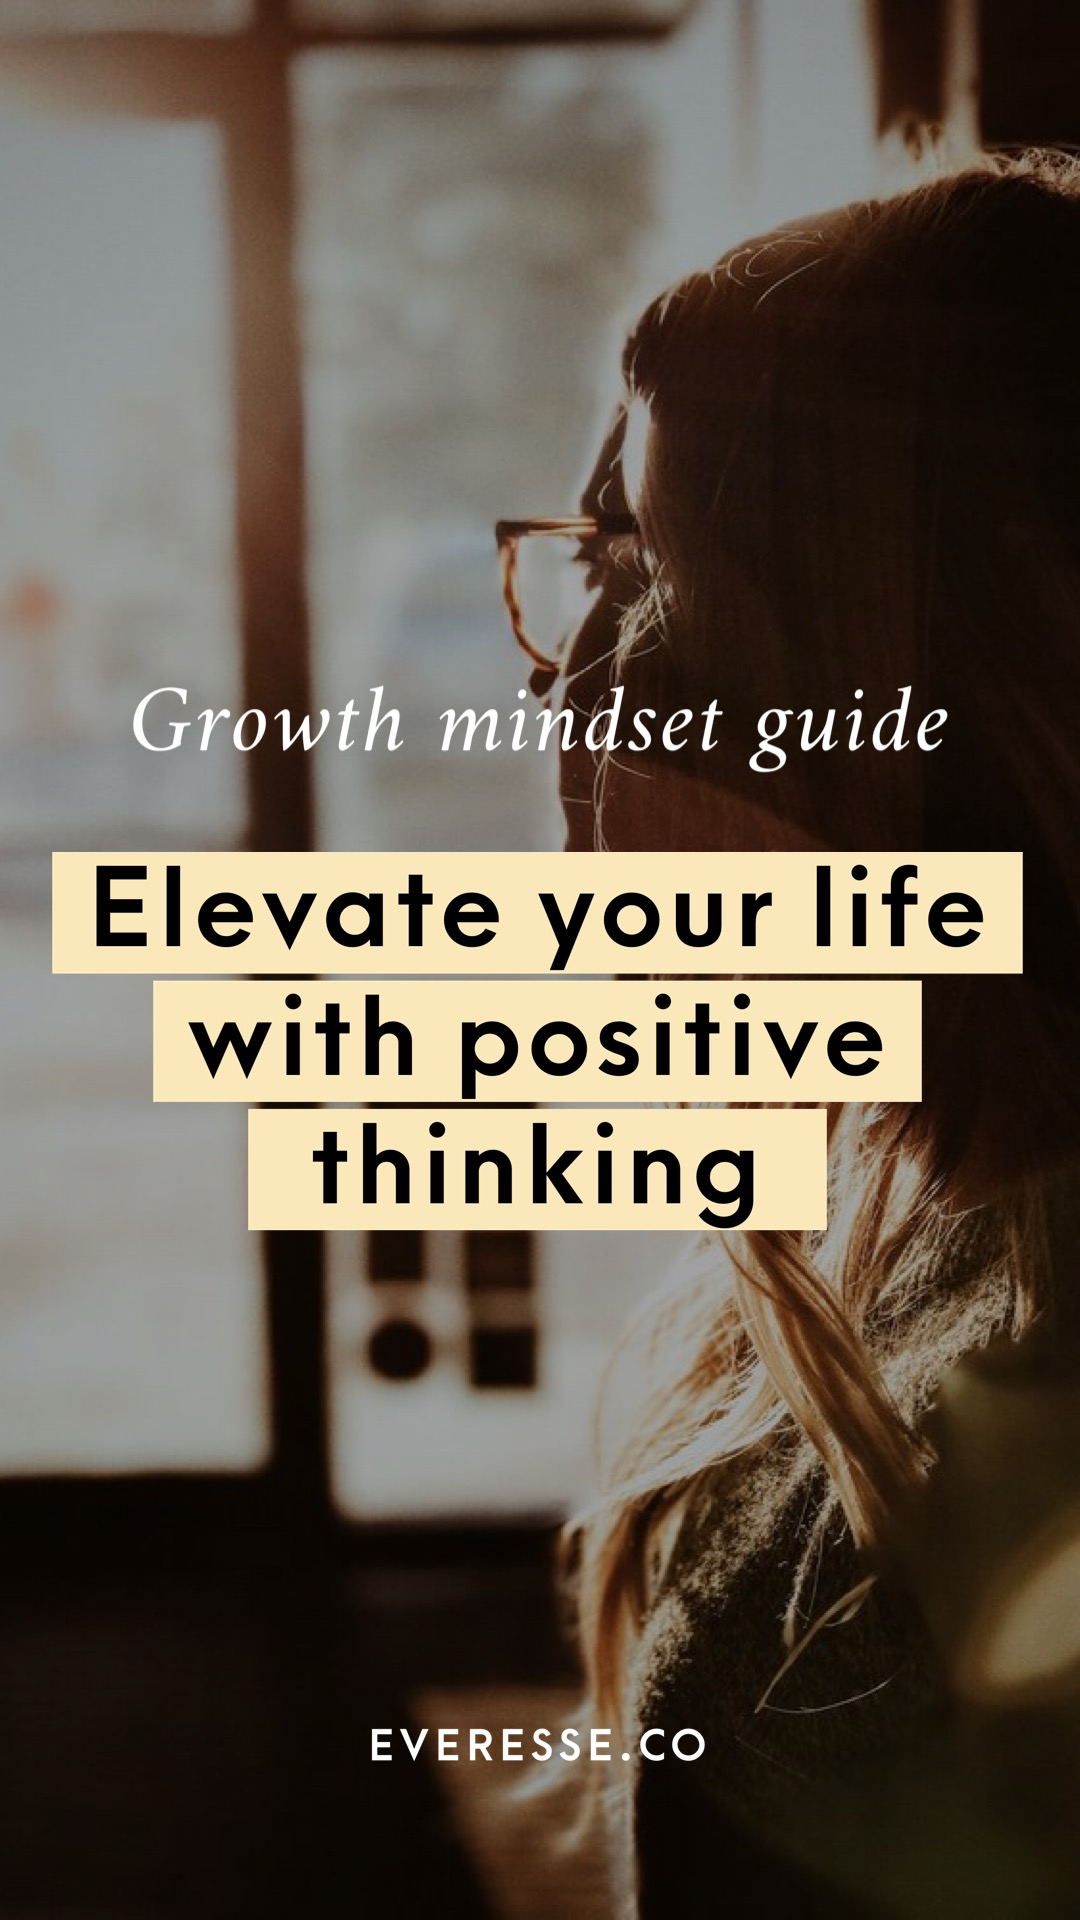 Growth mindset guide: elevate your life with positive thinking